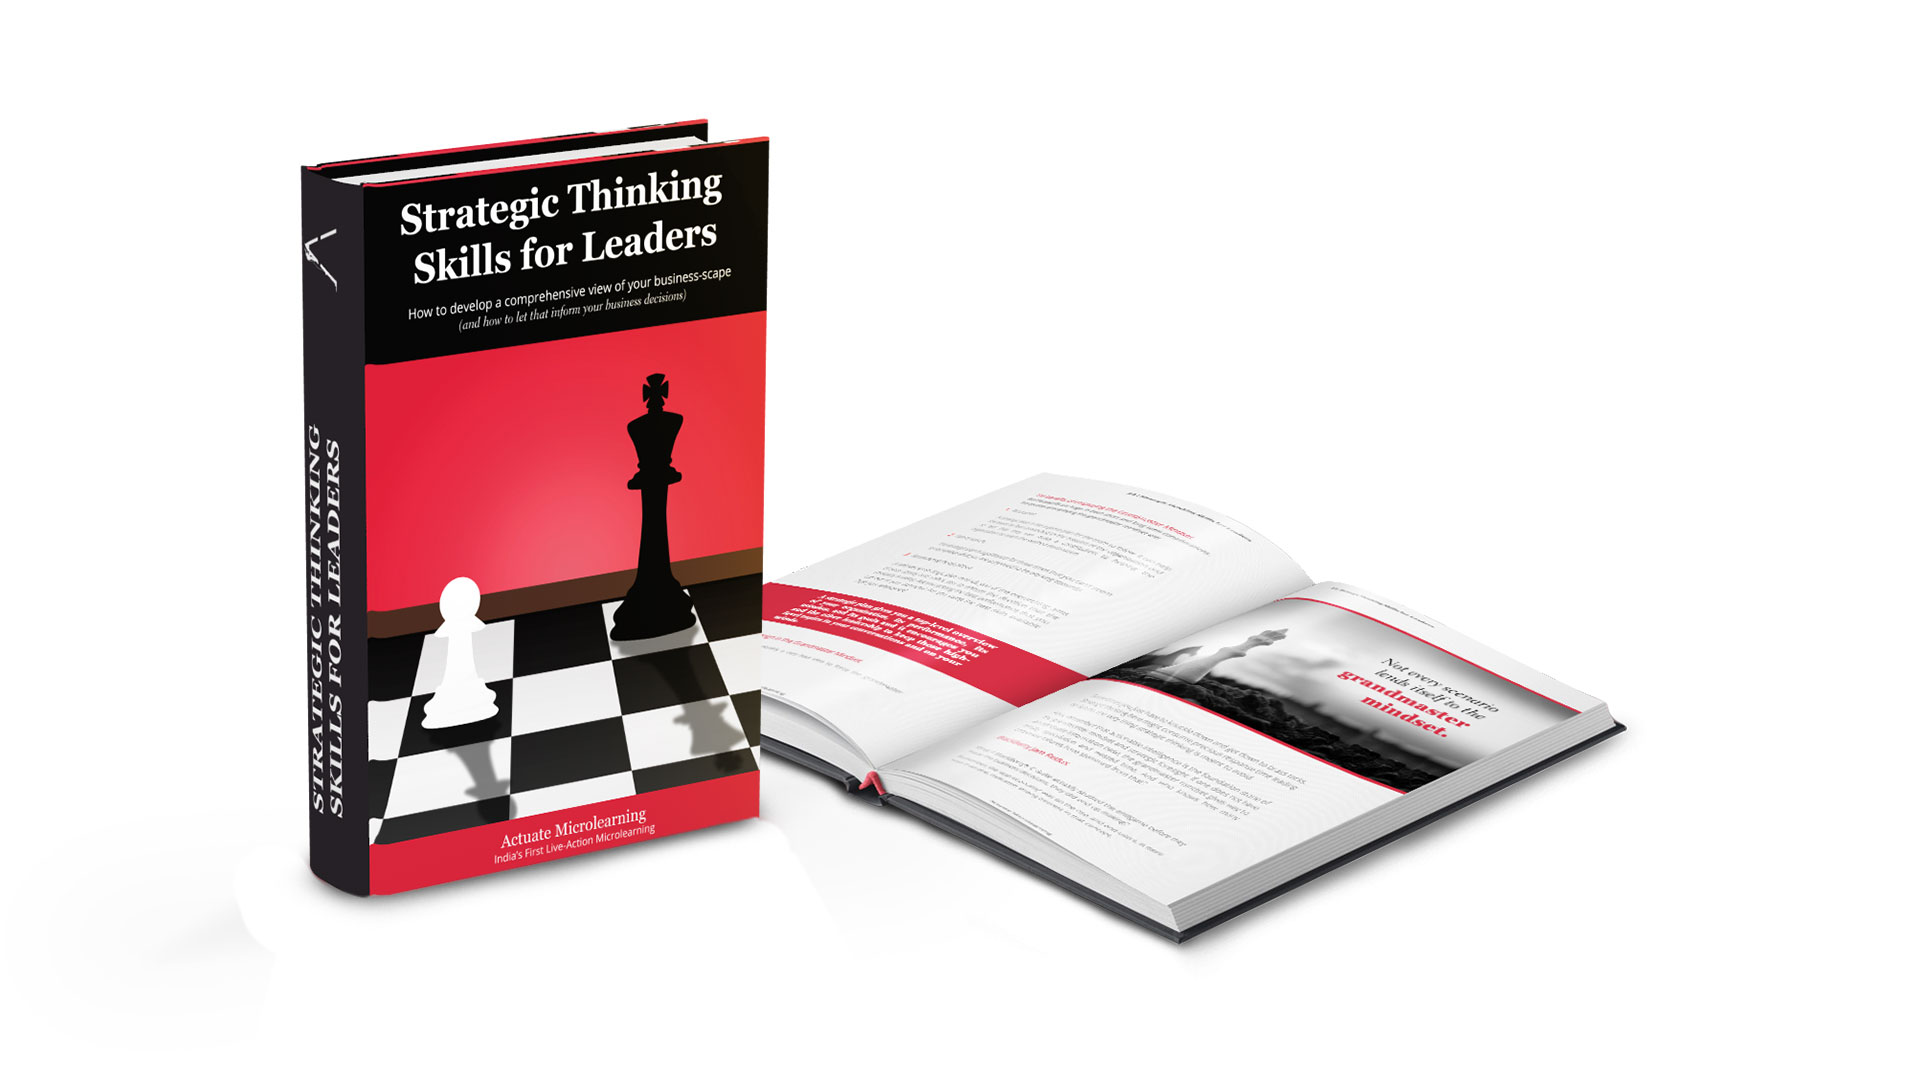 Strategic Thinking Skills for Leaders